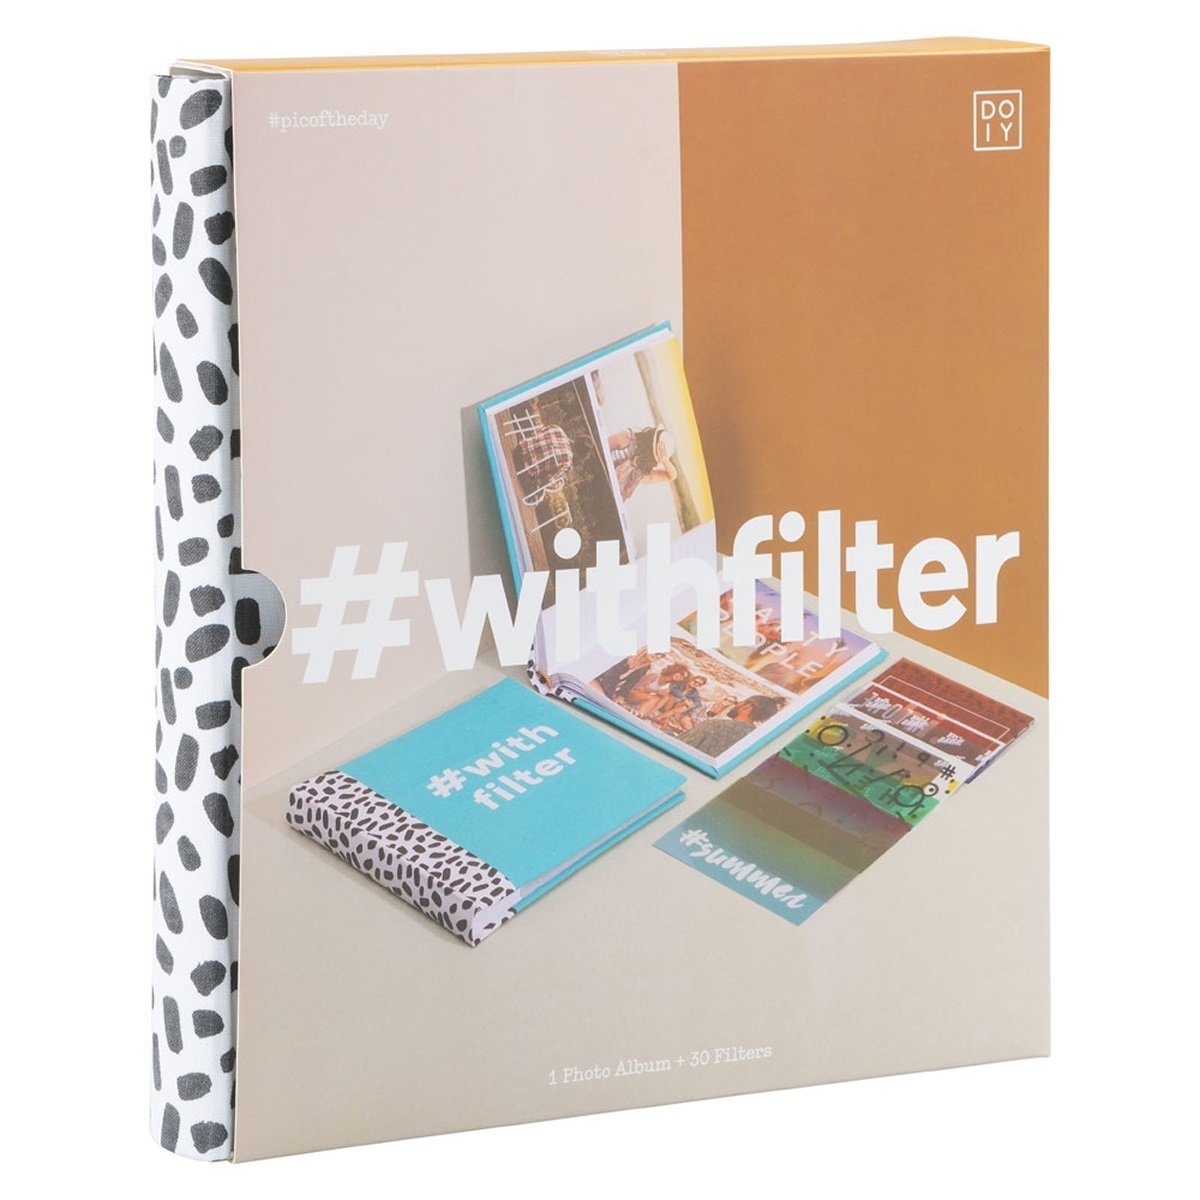 DOIY CUSTOM #Withfilter Multicolor Photo Album With Filters (Blue)